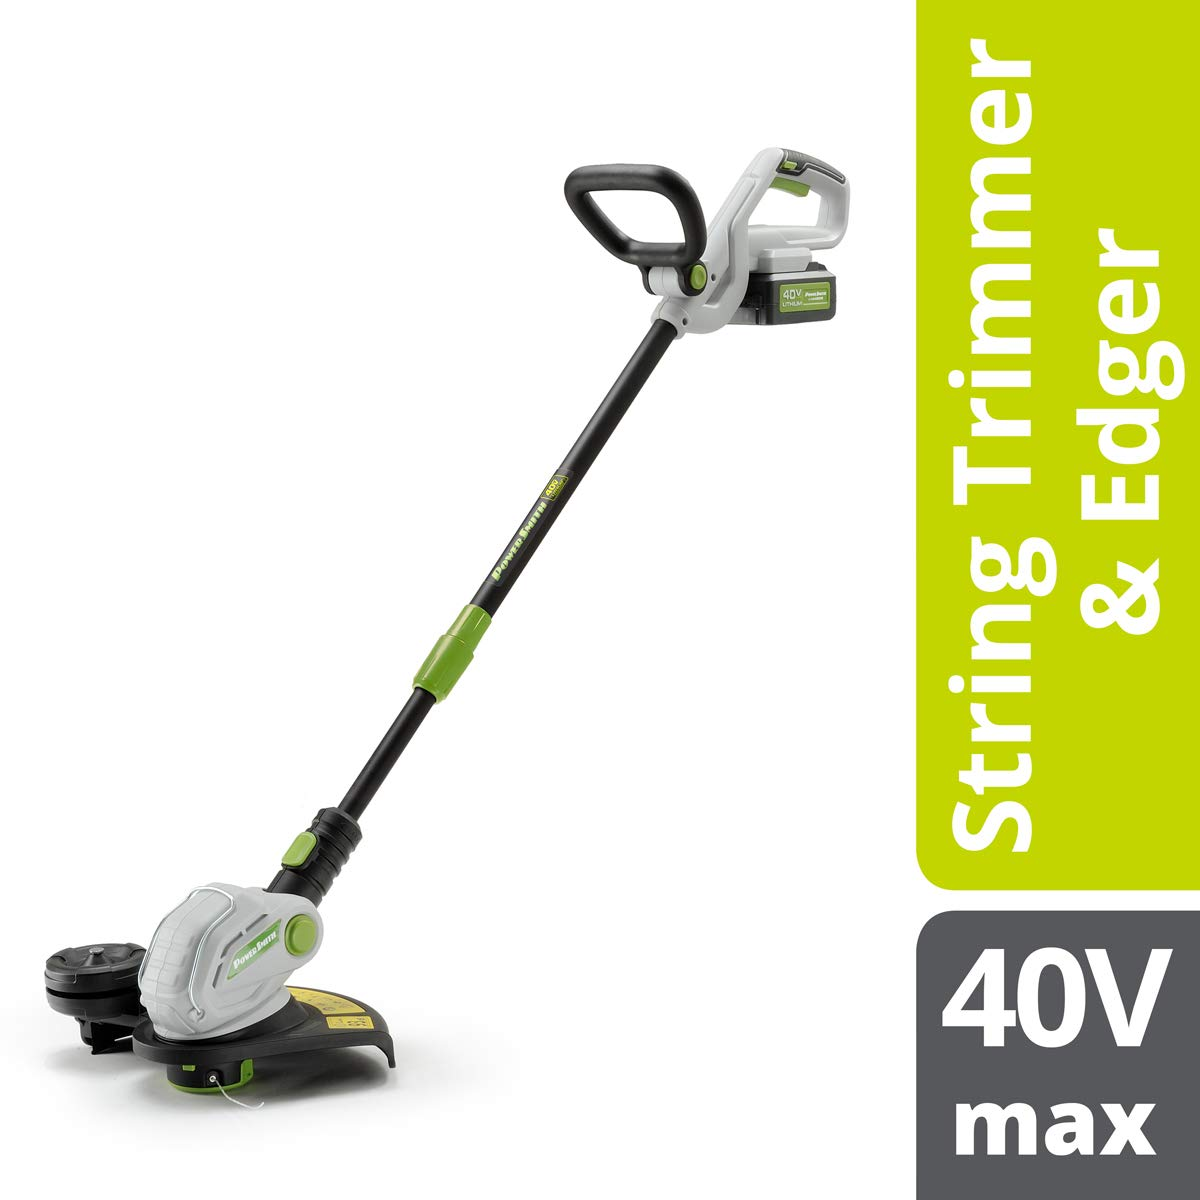 POWERSMITH PGT140 40V Max Rechargeable Cordless String Trimmer & Edger - Powerful, Eco-Friendly Lithium-Ion Battery-Powered, Battery & Charger Included